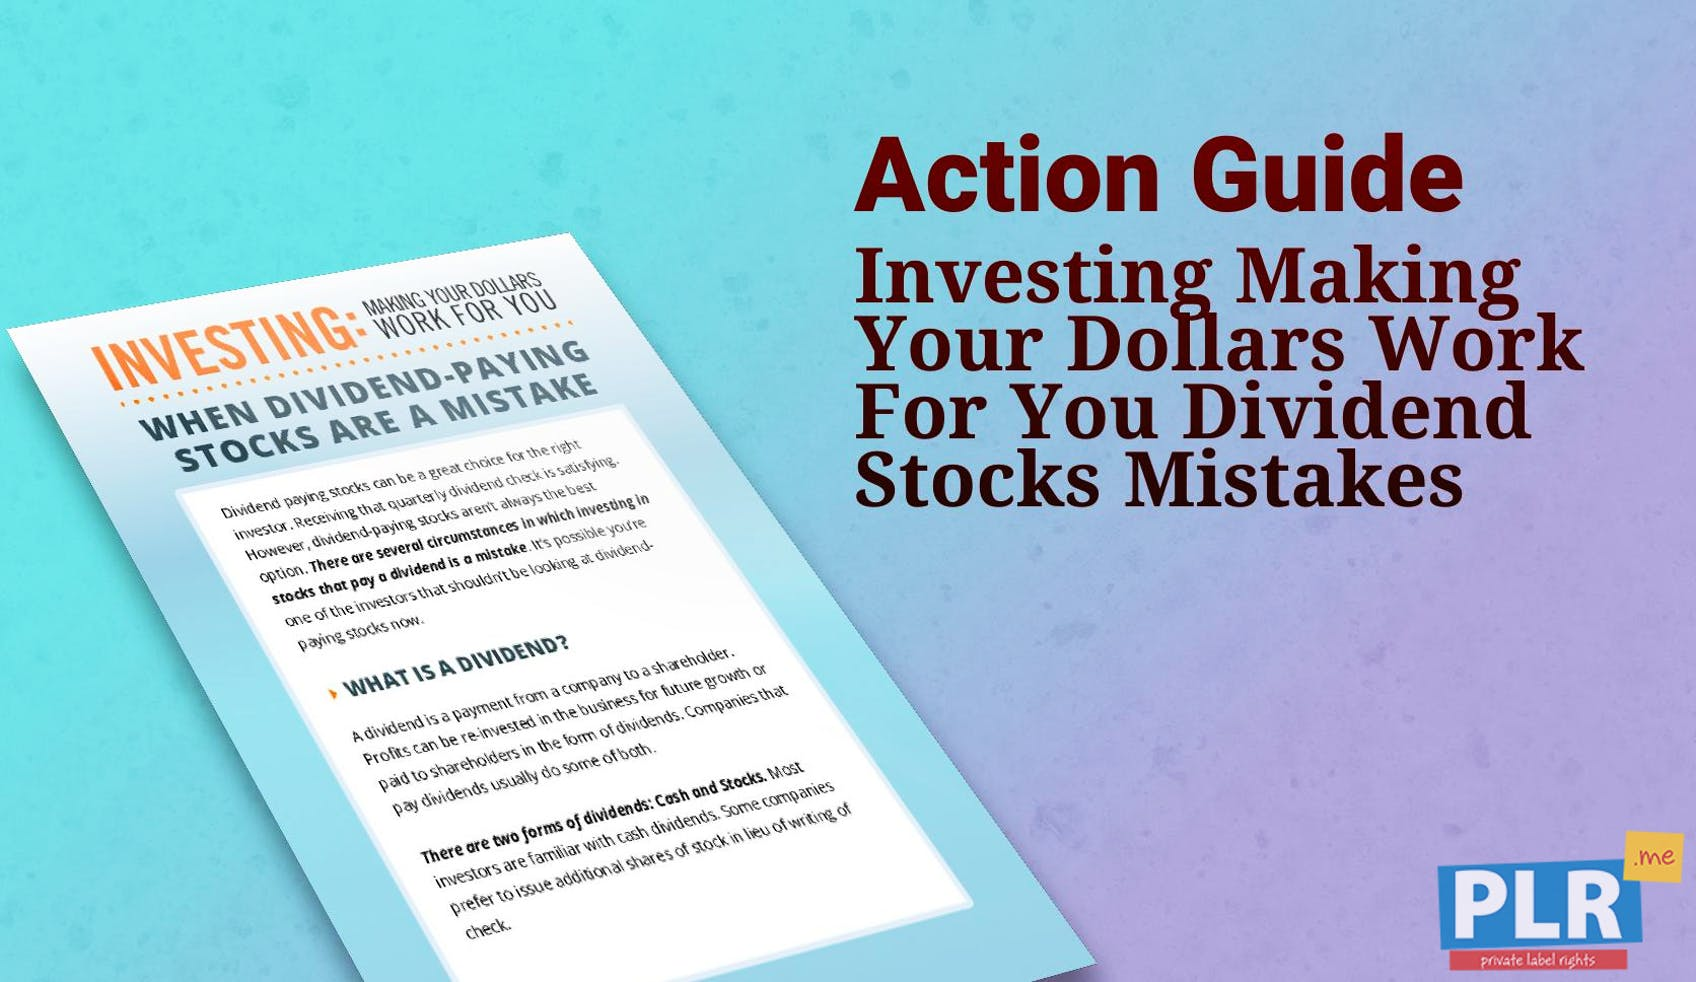 Investing Making Your Dollars Work For You Dividend Stocks Mistakes